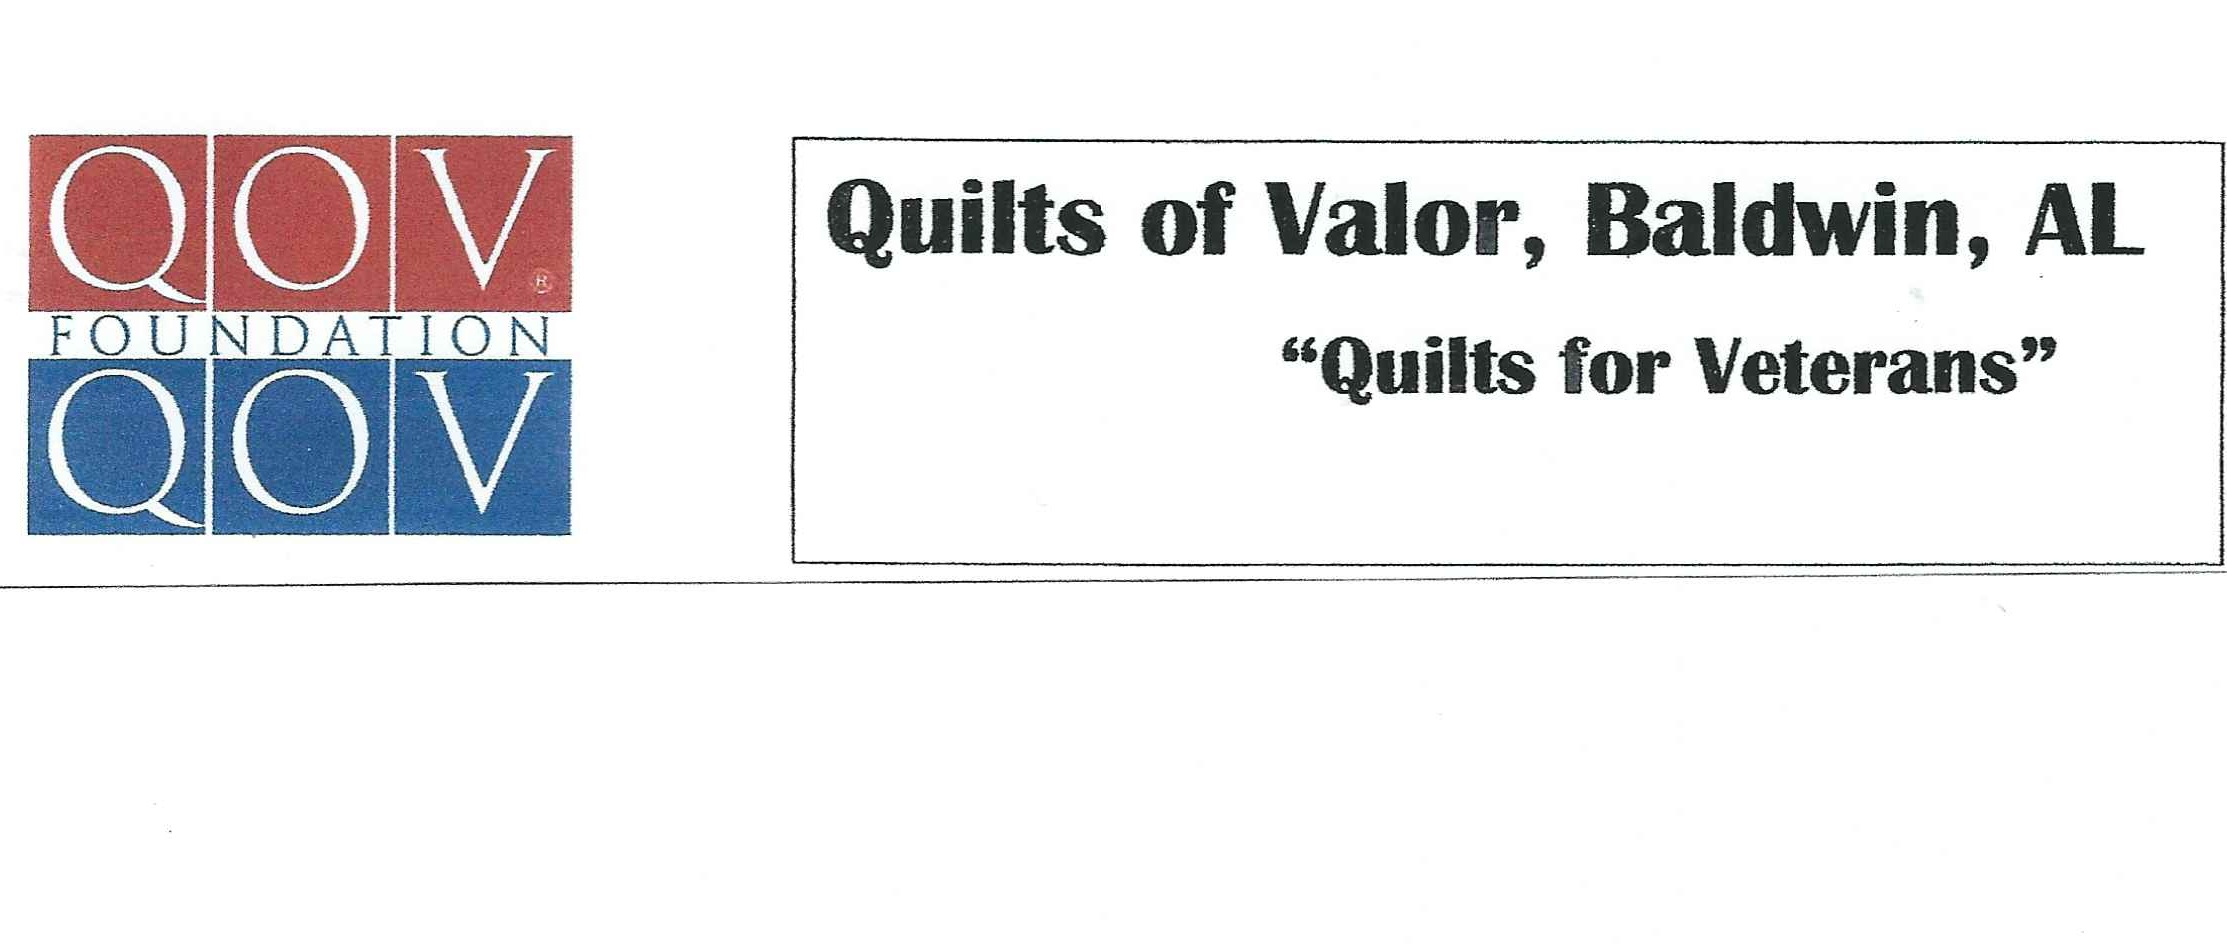 2019 PR Foundation is supporting the Quilts of Valor, Baldwin, AL benefitting veterans and service members  The mission of the Quilts of Valor is to cover service members and veterans touched by war with comforting and healing Quilts of Valor. A Quilt of Valor is a lifetime award.